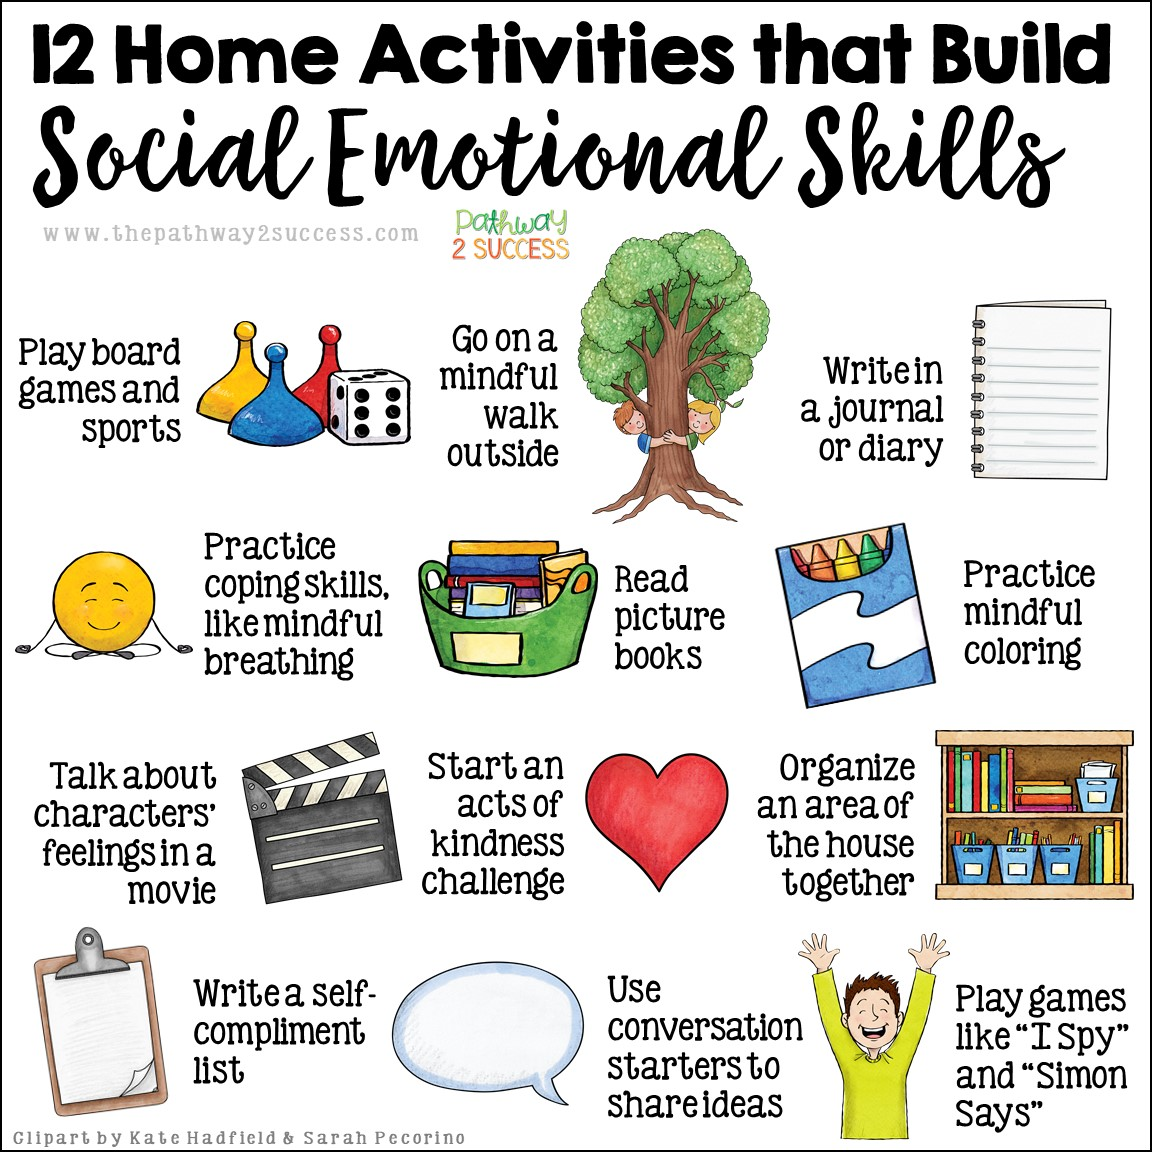 10+ Social Emotional Activities for Home - The Pathway 2 ...